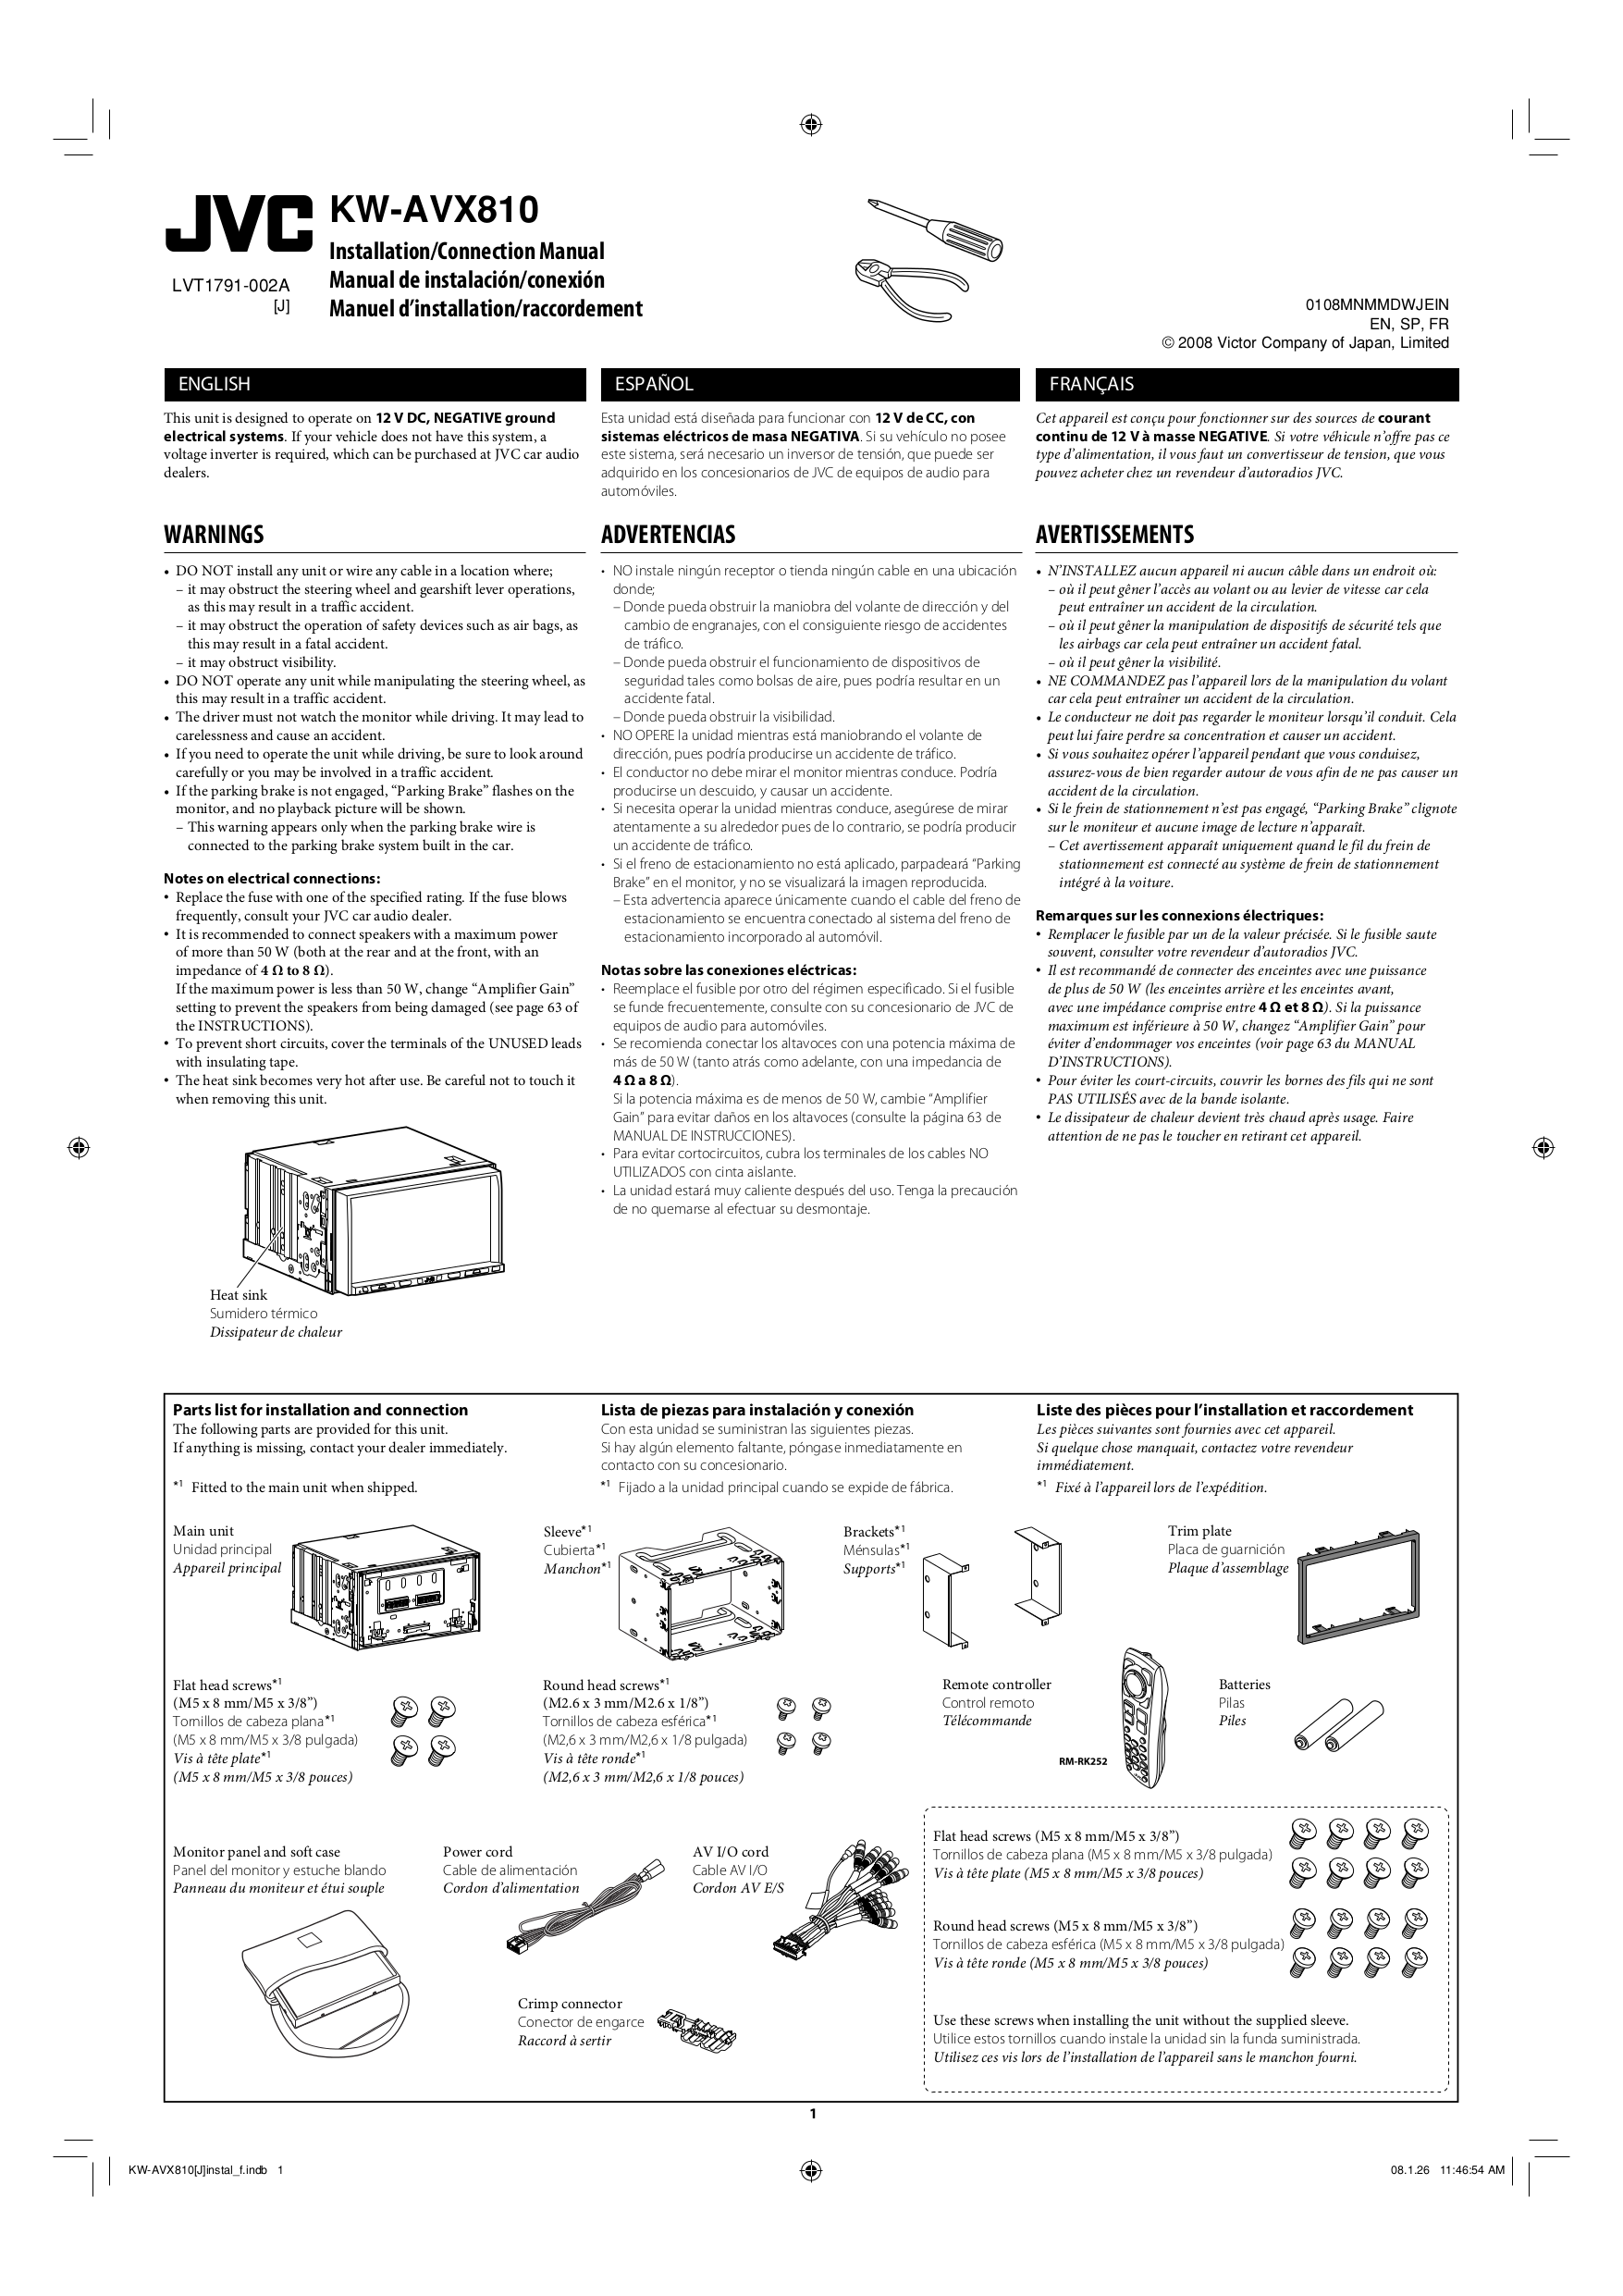 LVT1791 002A.pdf 0 download free pdf for jvc kw avx810 car video manual jvc kw-avx810 wiring diagram at fashall.co